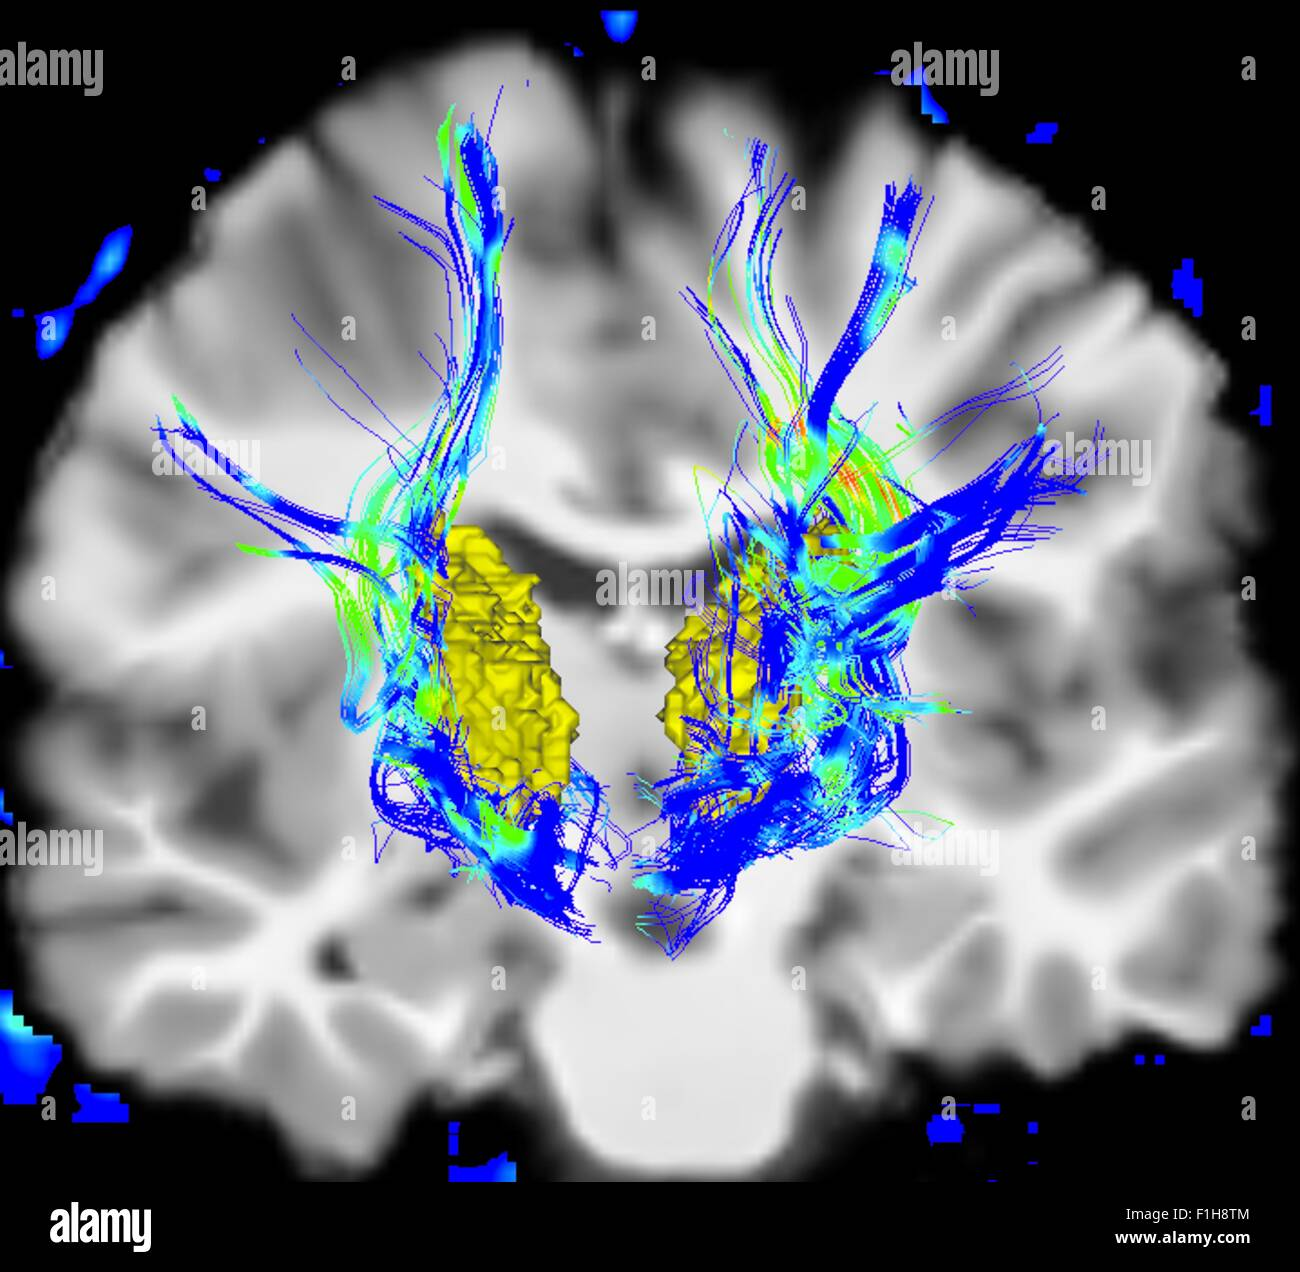 Coronal view human brain Parkinson's disease. Yellow surface is thalamus blue/green areas highlight fibers motor - Stock Image